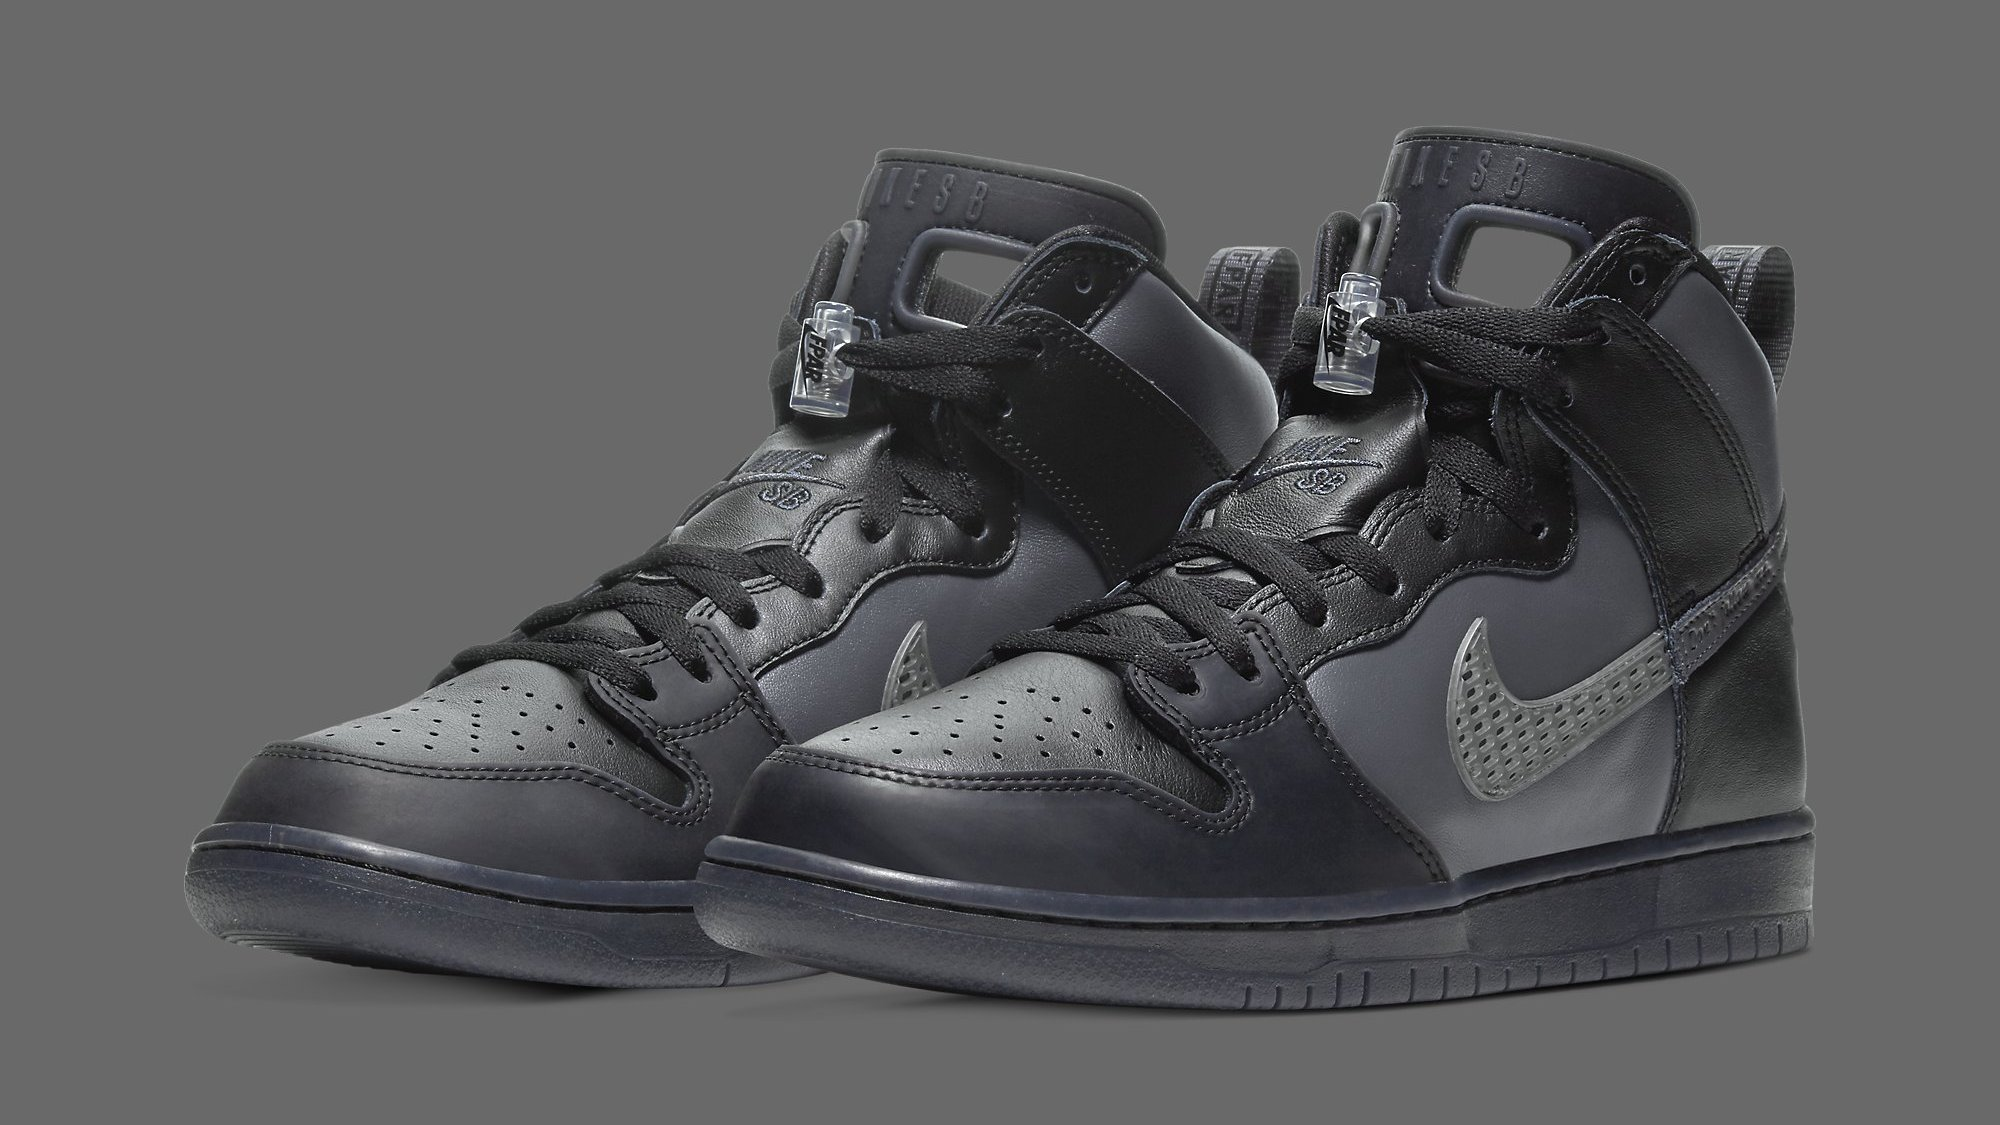 Turismo social Melodrama  Forty Percents Against Rights x Nike SB Dunk High Release Date | Sole  Collector